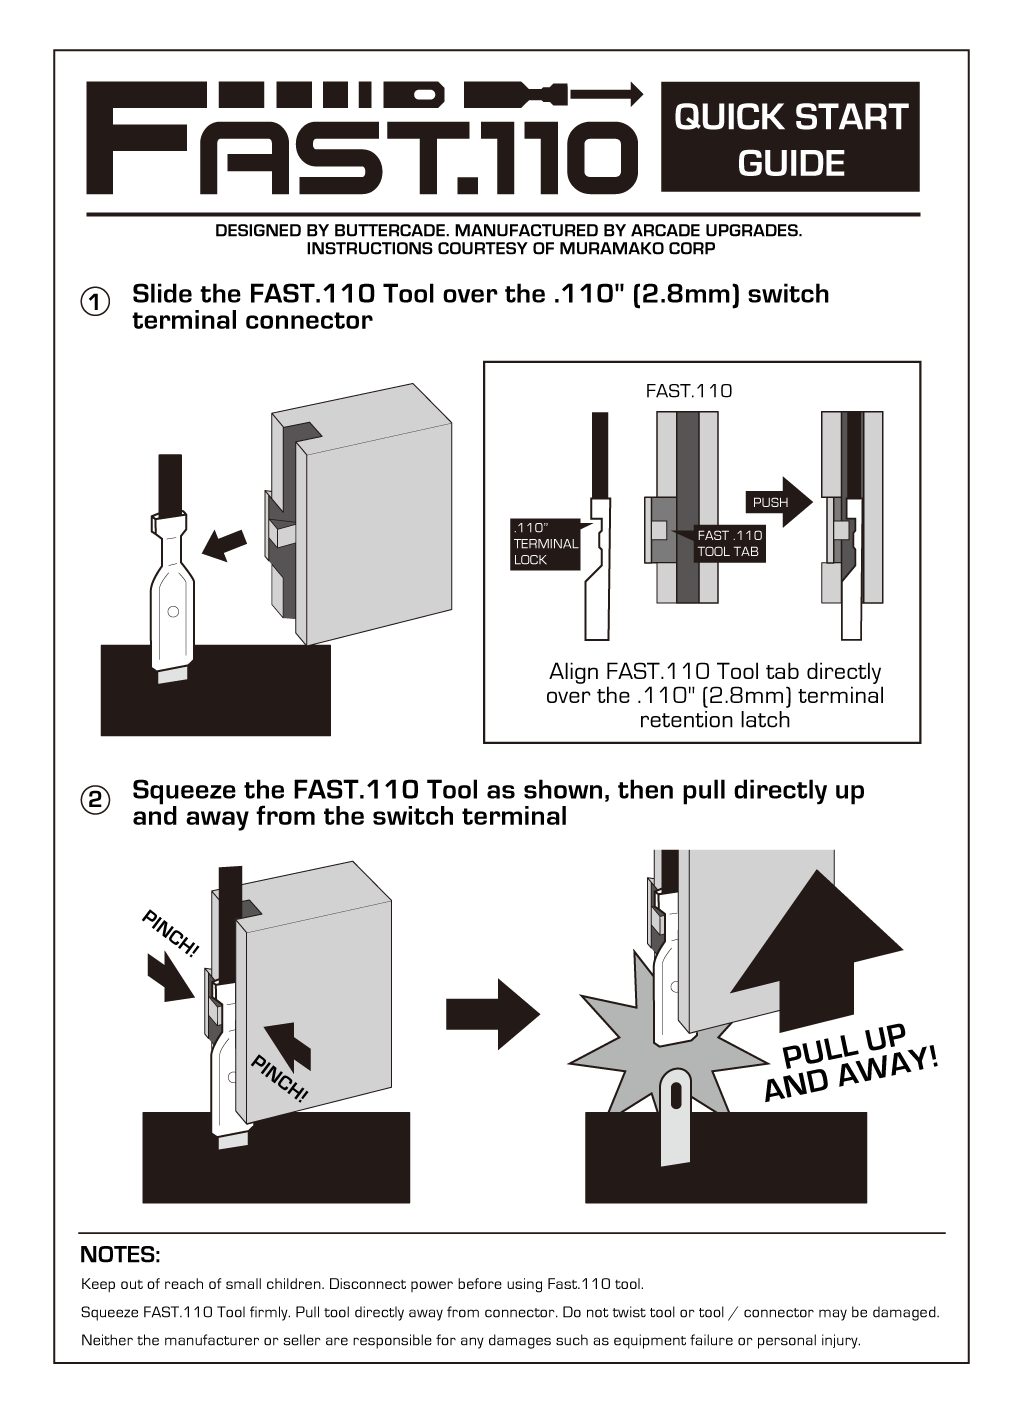 fast110-instructions-full-1024.png